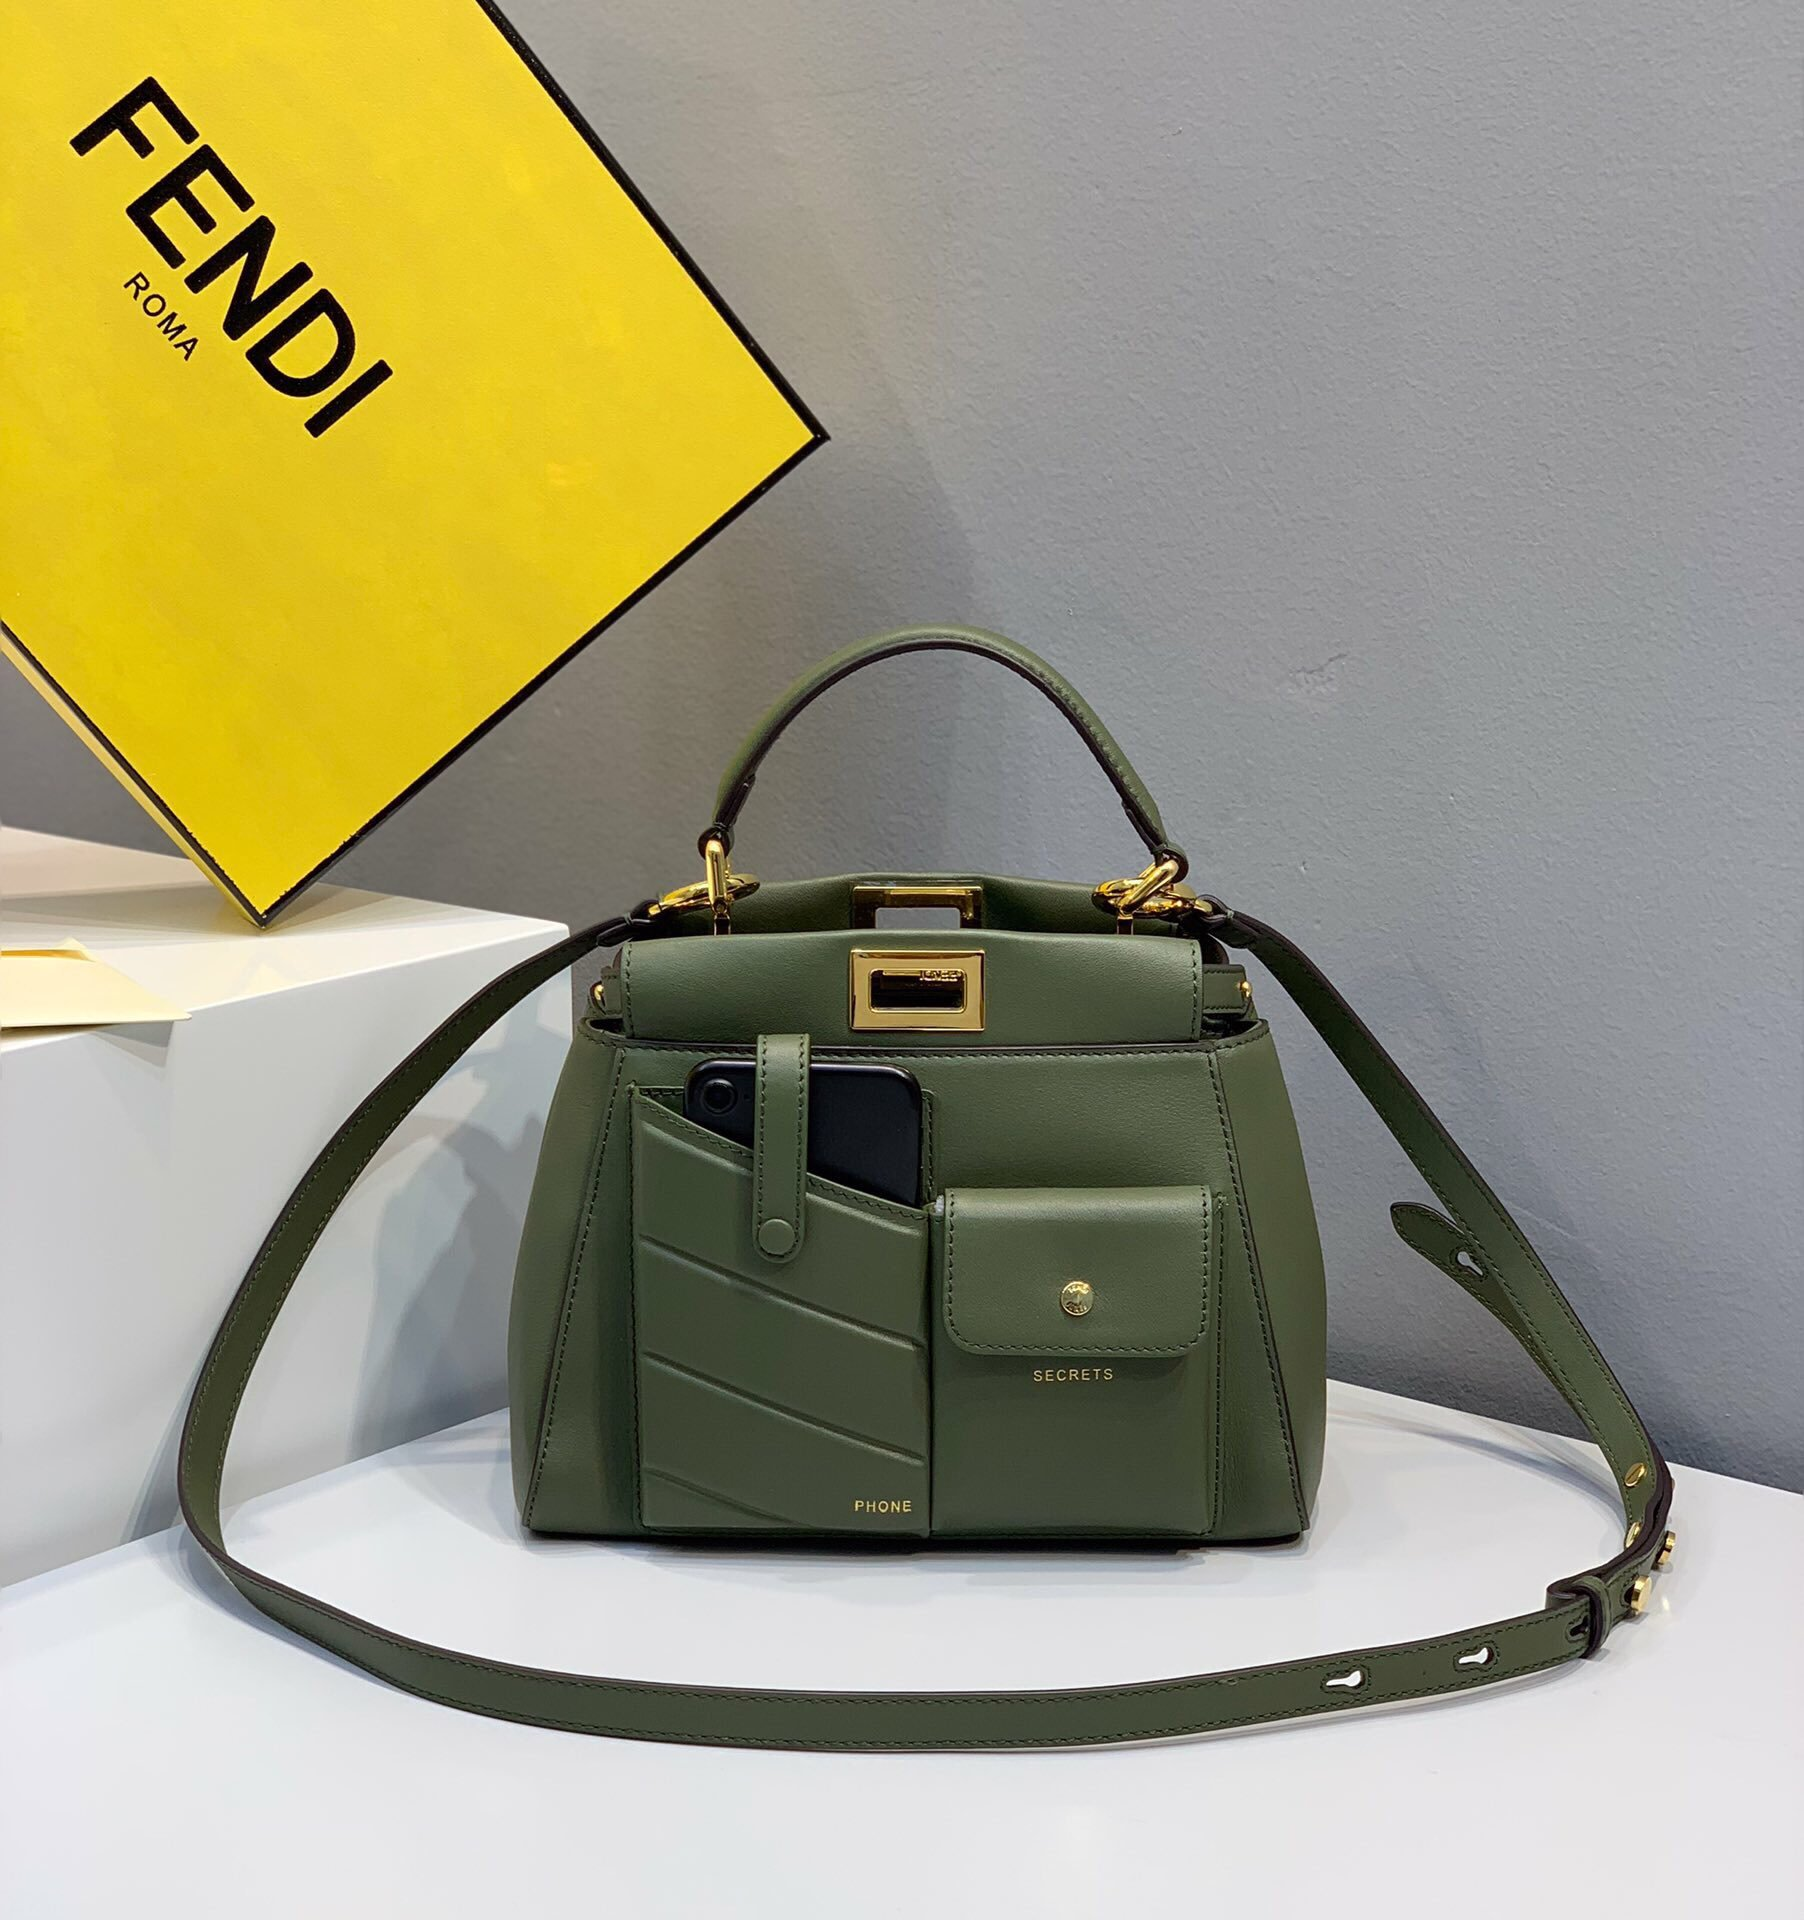 Replica Fendi Peekaboo Iconic Mini Green Leather Bag